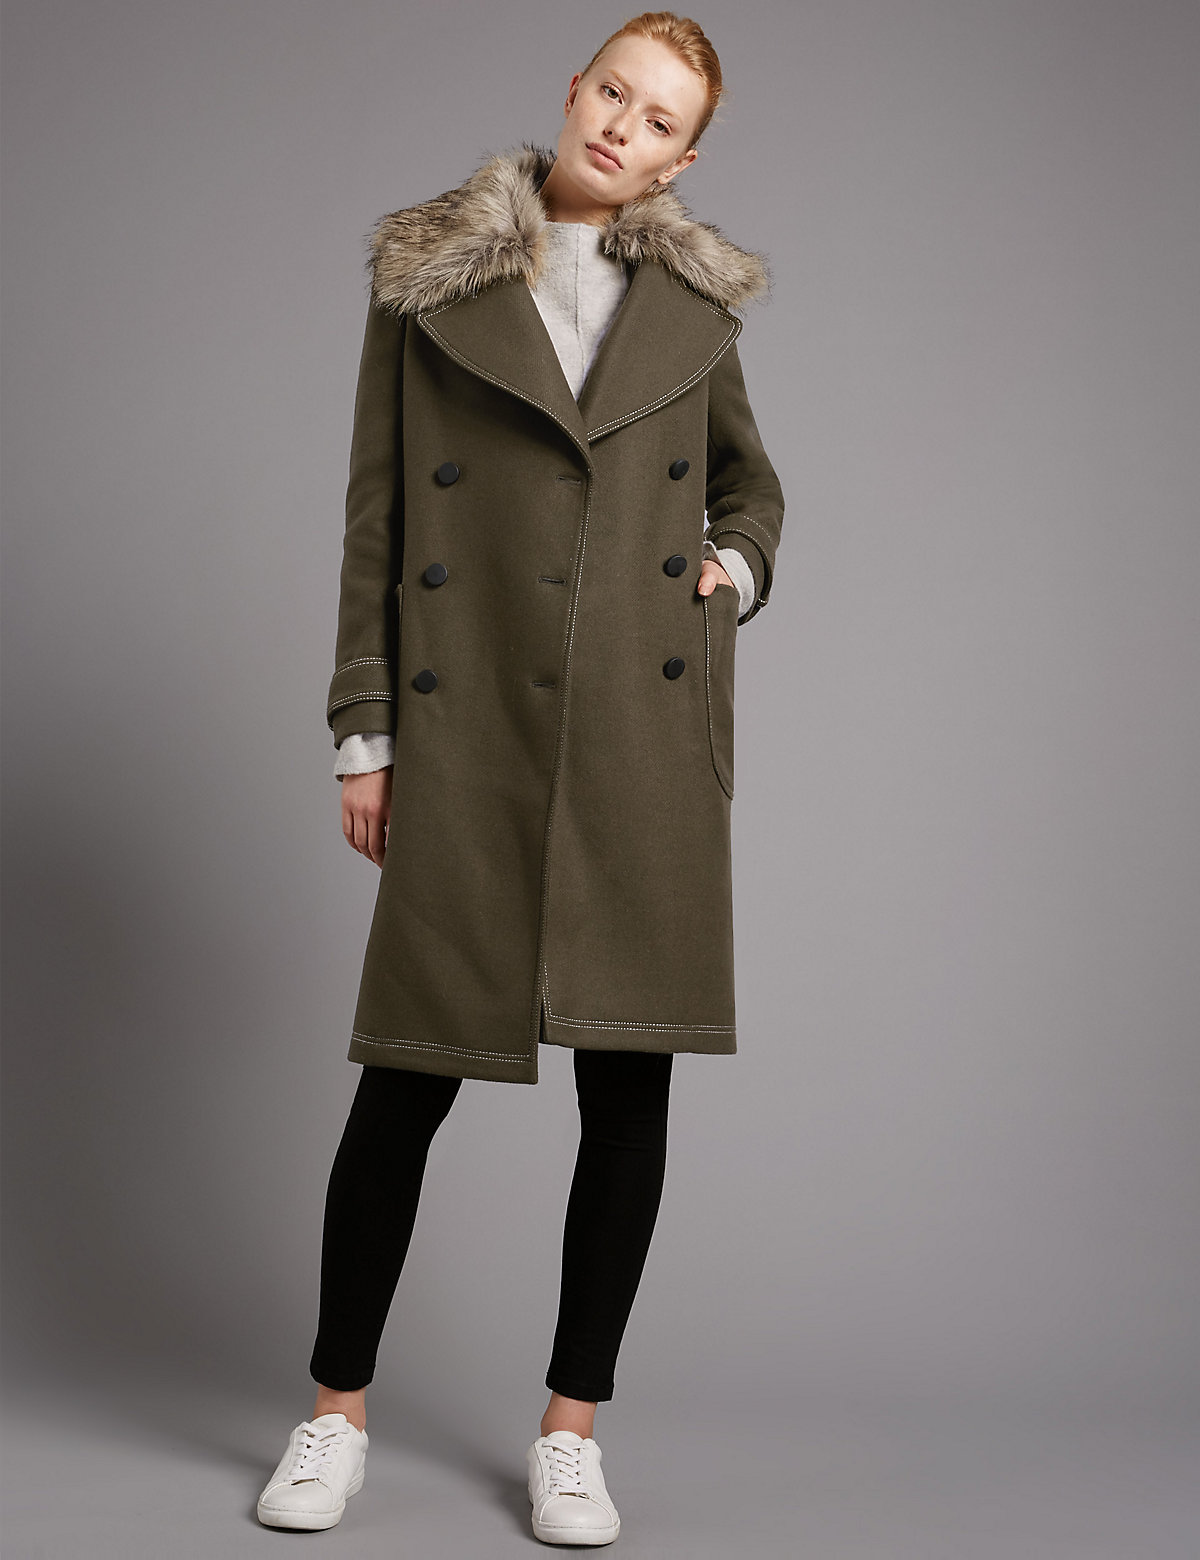 Autograph Collared Neck Wool Blend Overcoat